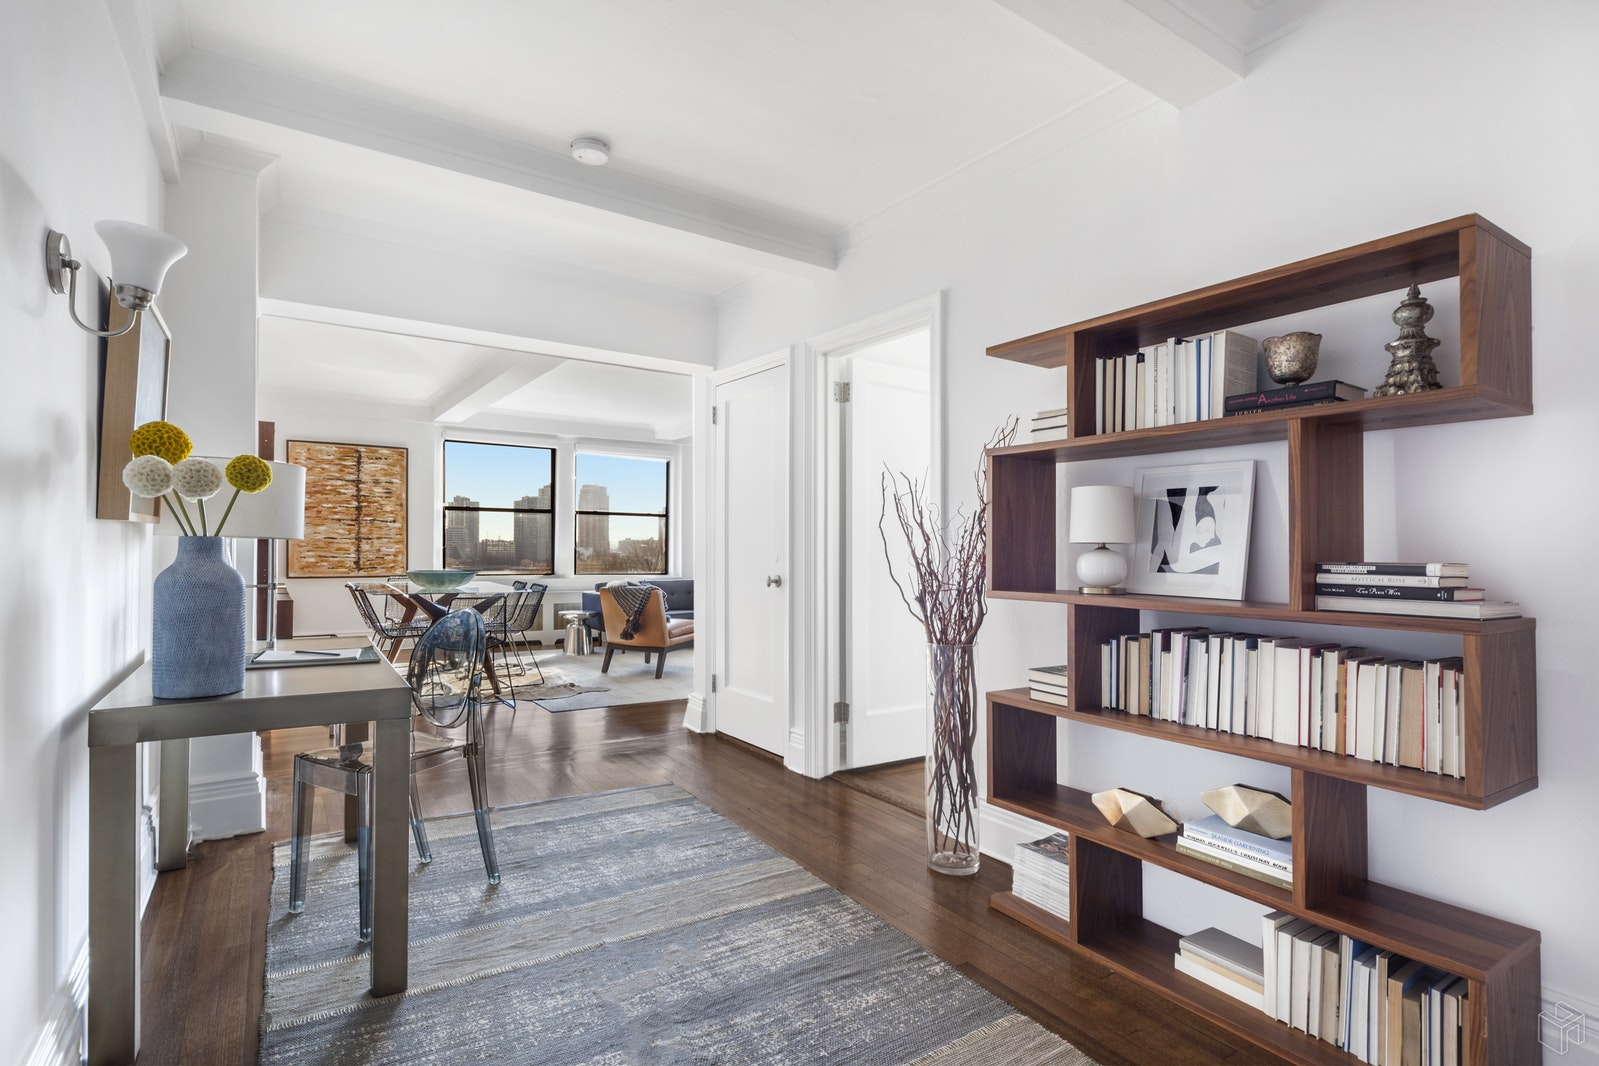 865 UNITED NATIONS PLAZA 10A, Midtown East, $1,125,000, Web #: 19402052